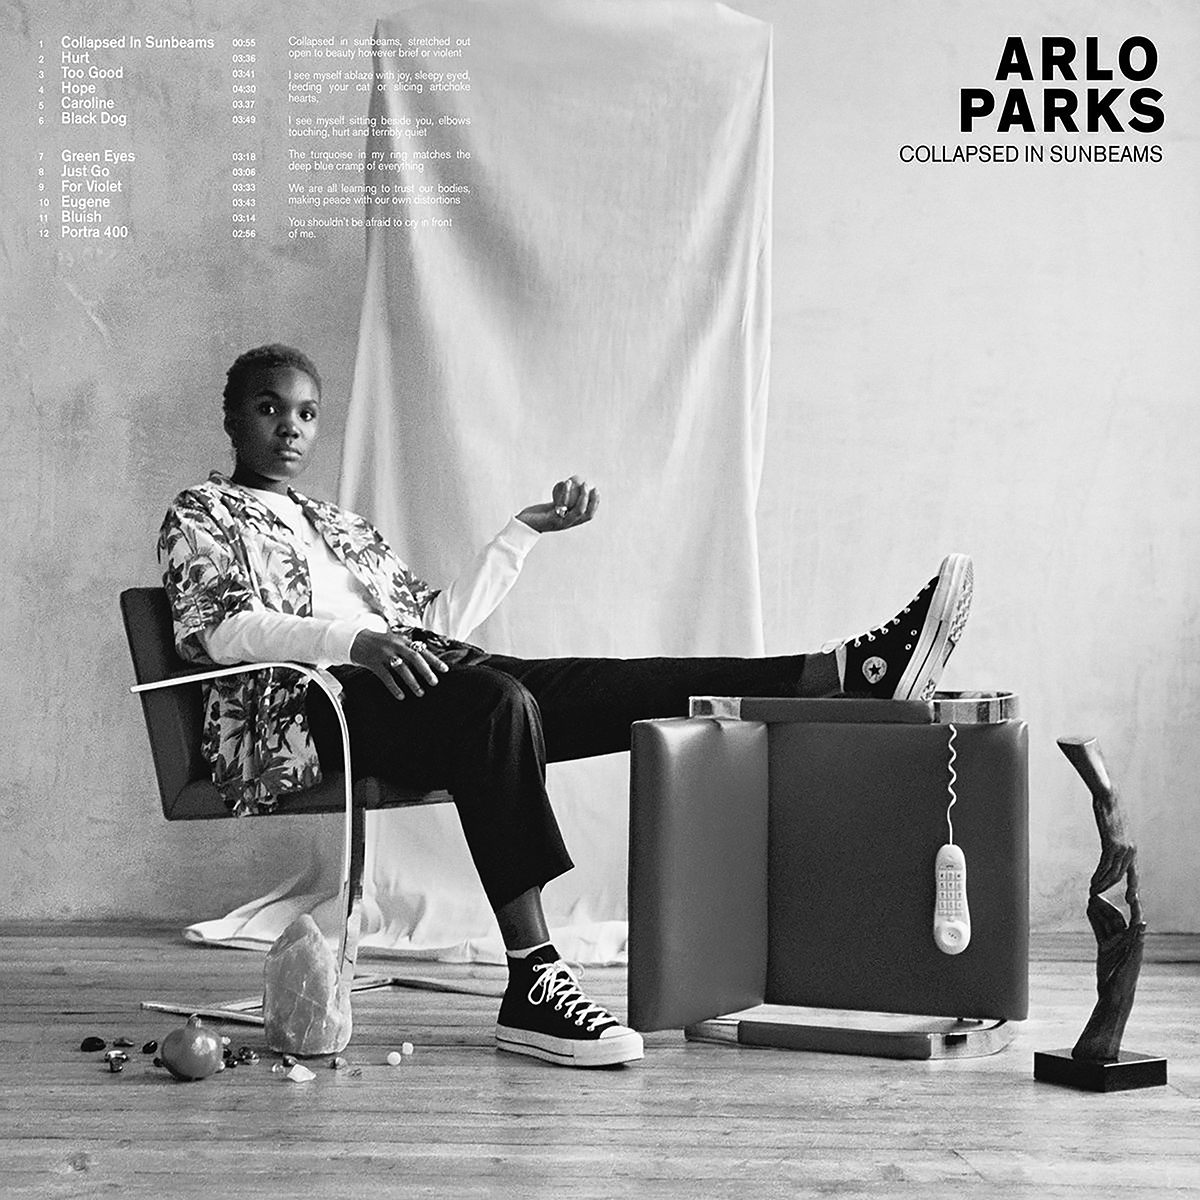 Album cover for Collapsed in Sunbeams by Arlo Parks. It's a black and white photo of Arlo Parks sitting in a chair with her foot up on a chair that's on its side. She's a Black woman with short hair. She's wearing a white long-sleeved shirt with an unbuttoned, short-sleeved floral shirt on top, as well as black pants and high top Converse. She's holding her left hand in the air and is looking directly at the camera. There are objects littered around the floor, like a salt lamp, a sculpture of 2 hands touching, and a remote hanging from the chair her foot is on.